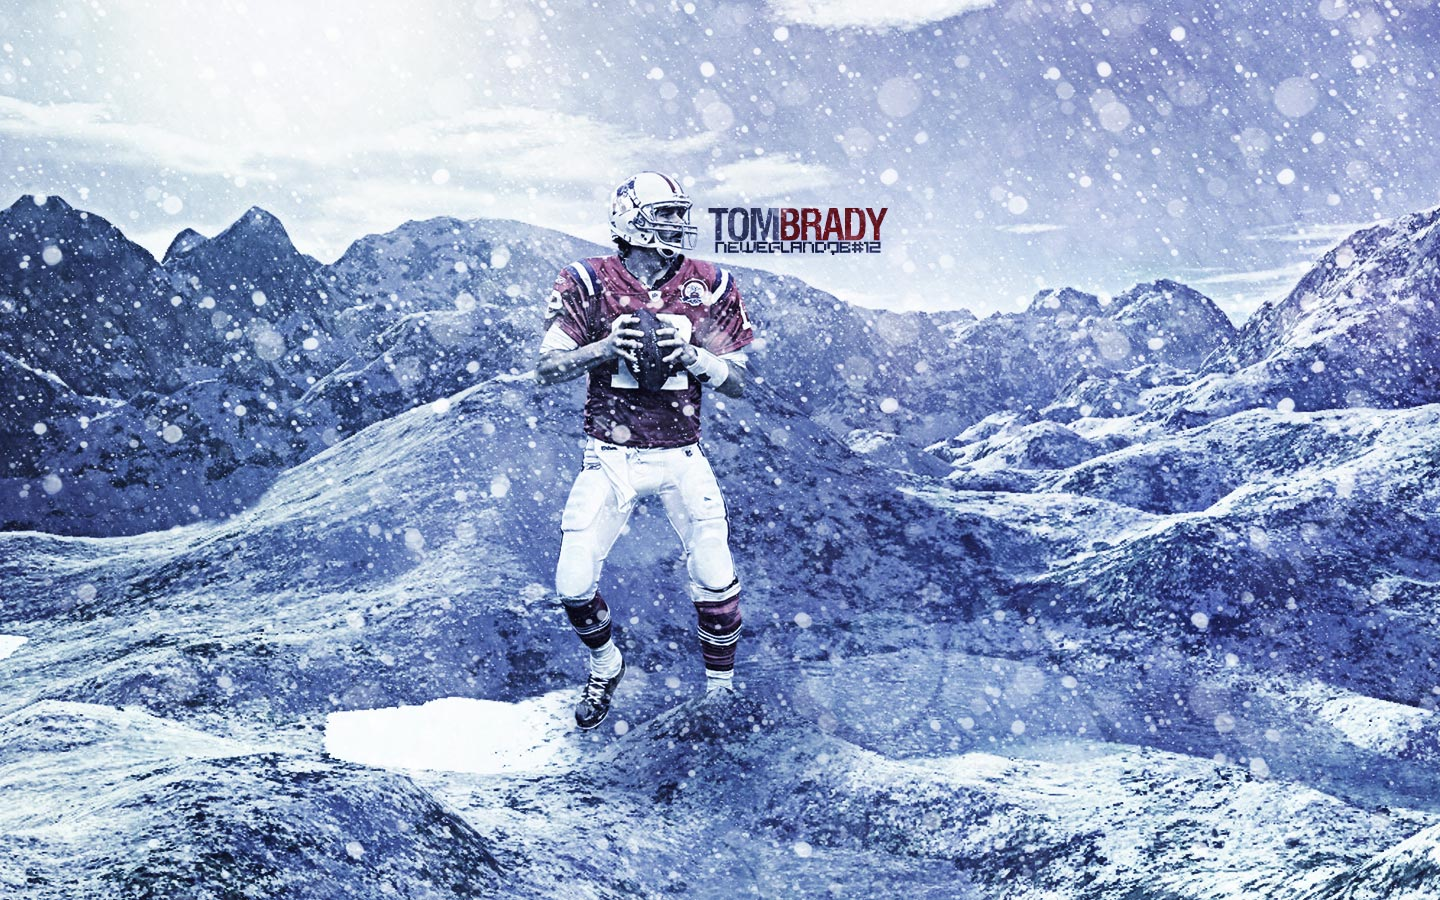 Free New England Patriots wallpaper desktop image | New England ...